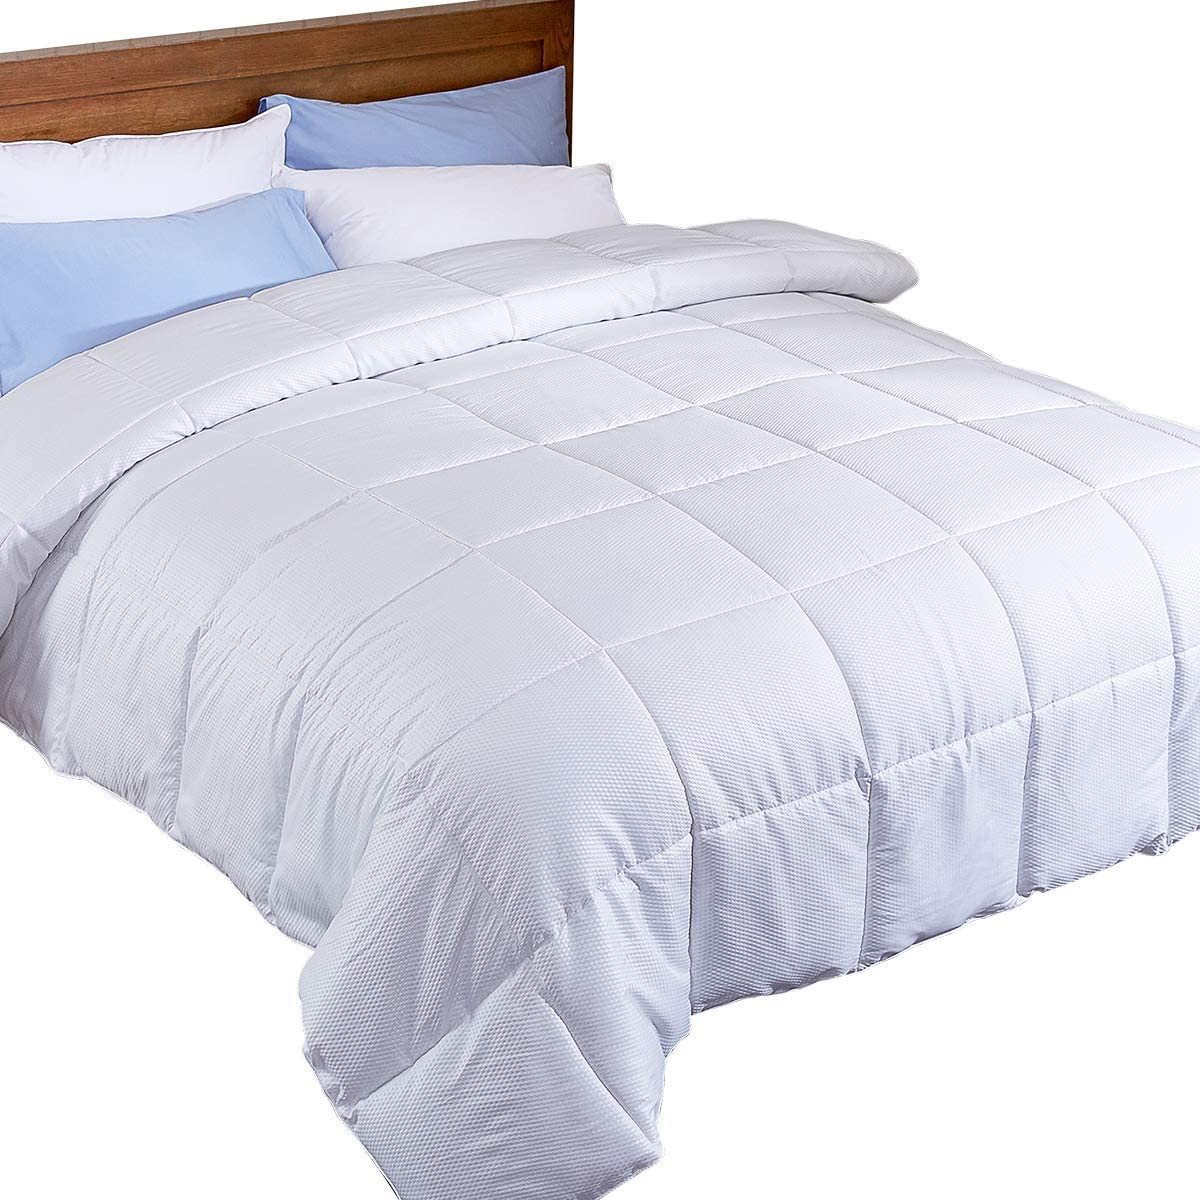 Puredown Down Alternative All Season Comforter Polyester Fabric White Twin